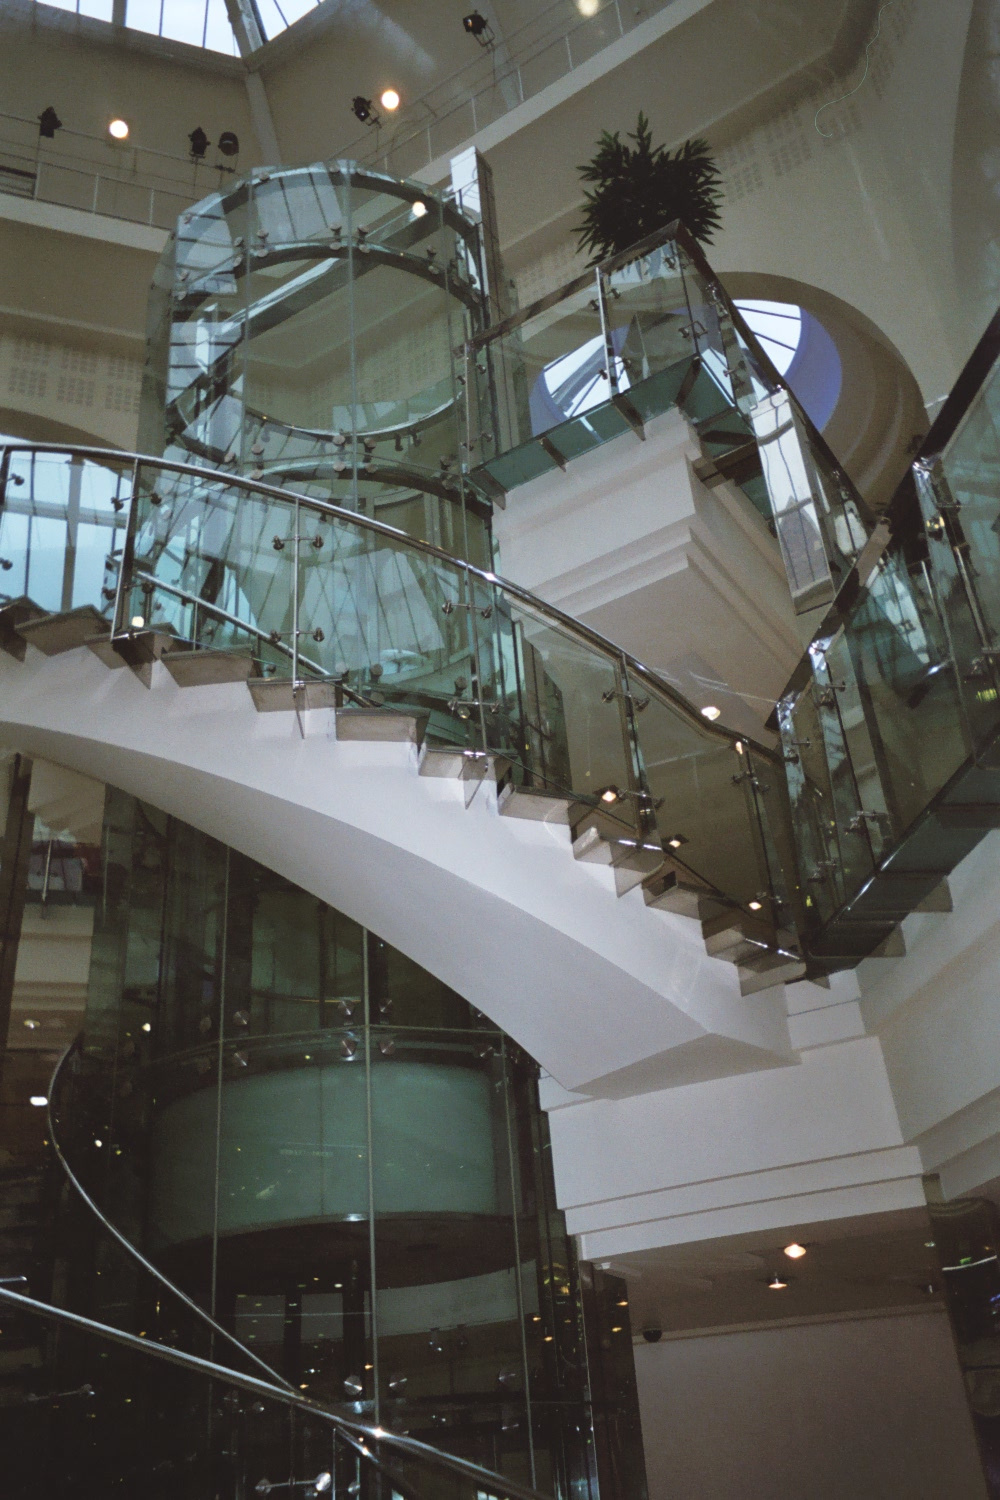 Lift and stairs in the Triangle/Corn Exchange, Manchester